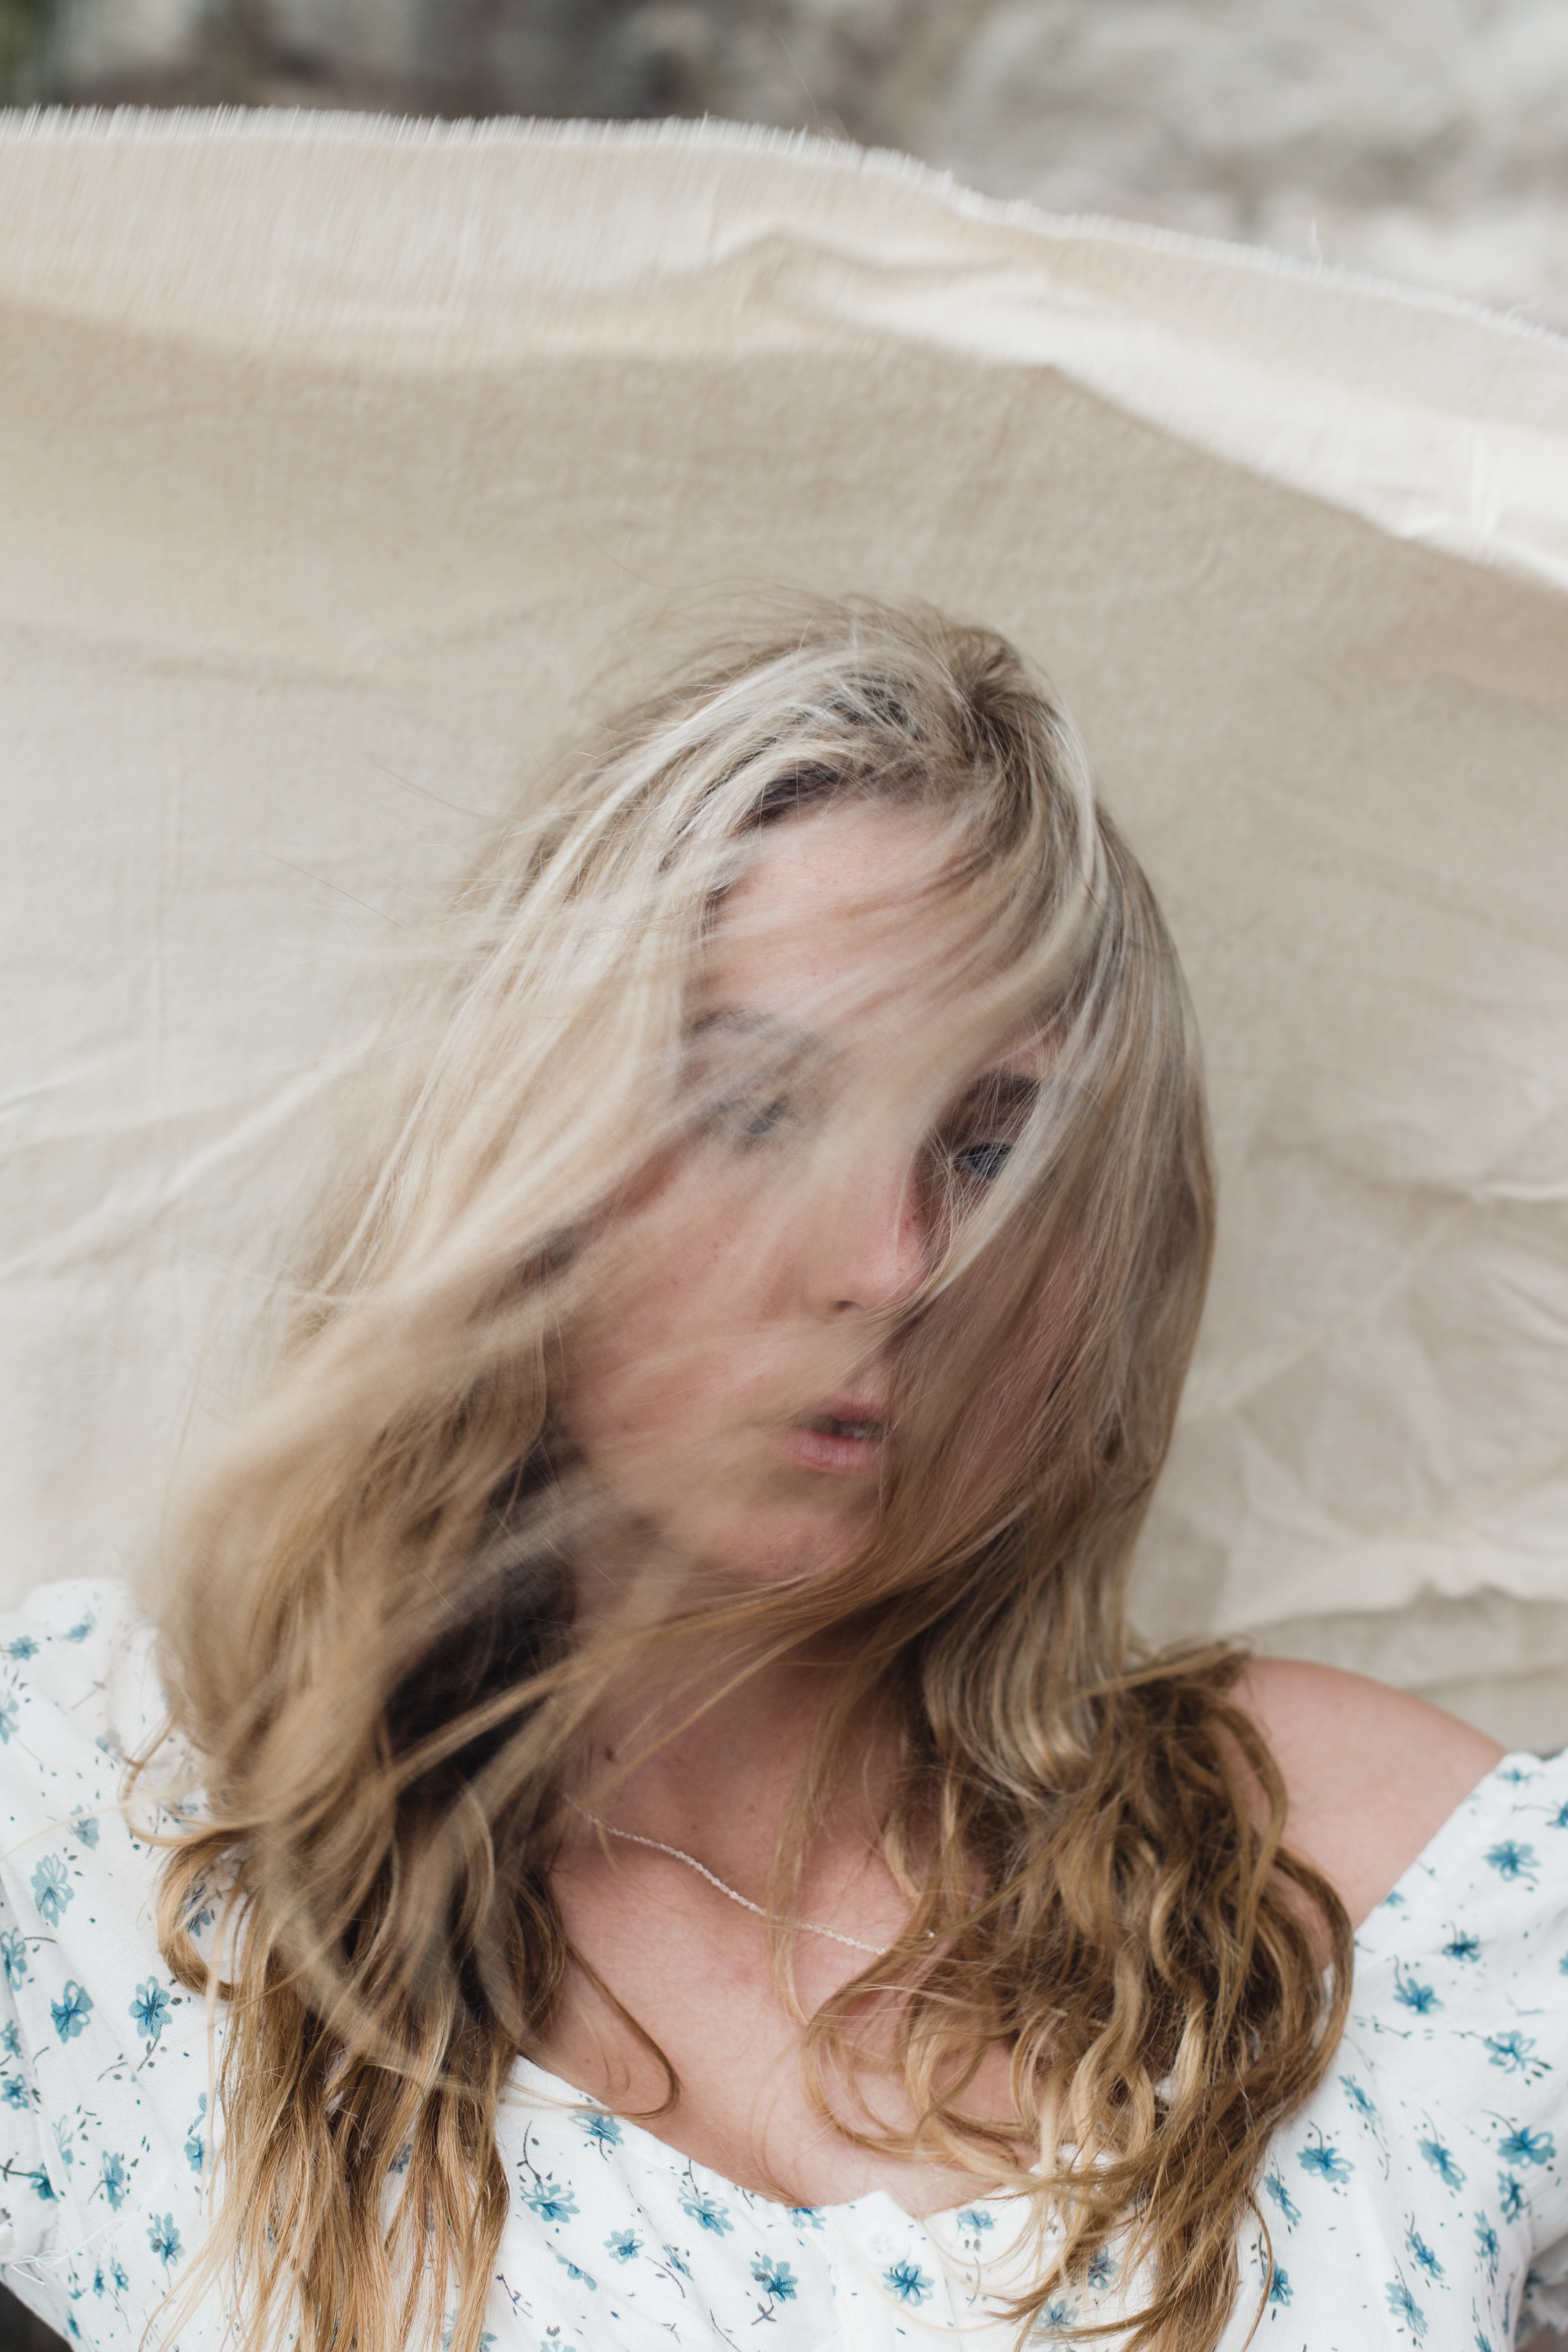 Wind and hair in face, holding fabric in the wind